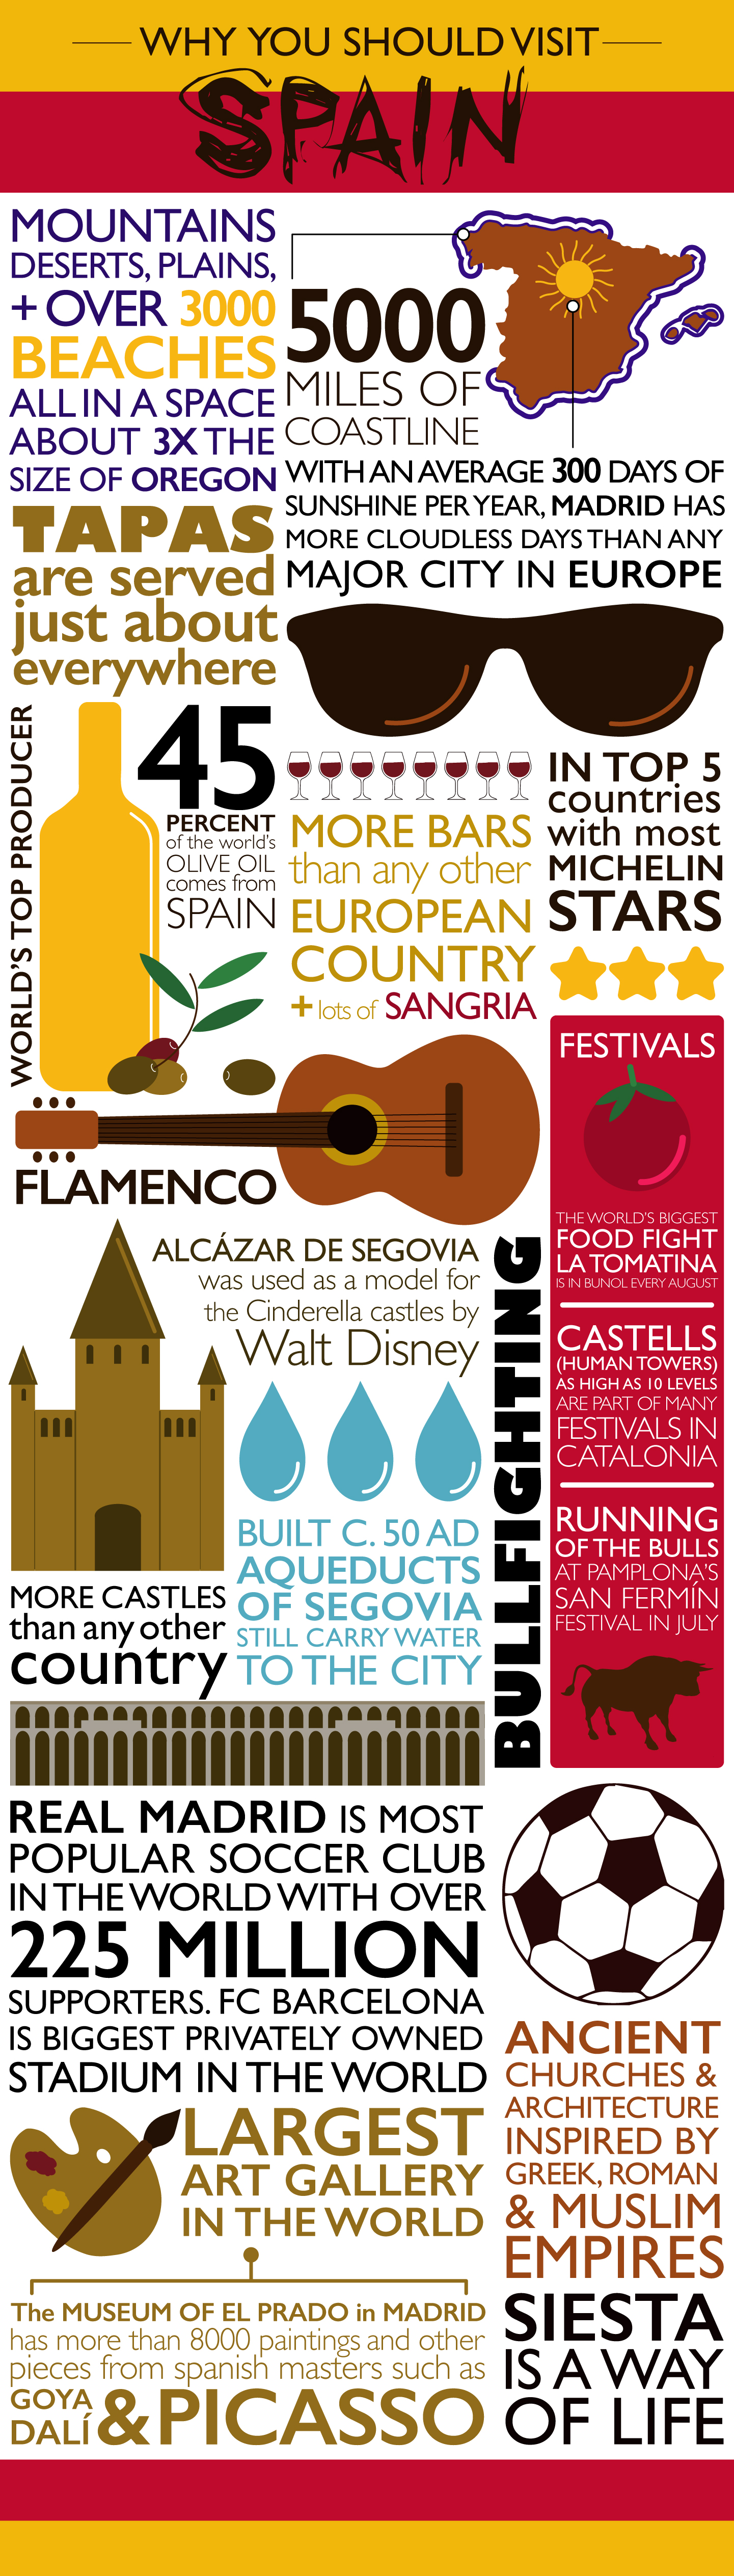 Why You Should Visit Spain infographic by Sam Henderson of Today's Nest